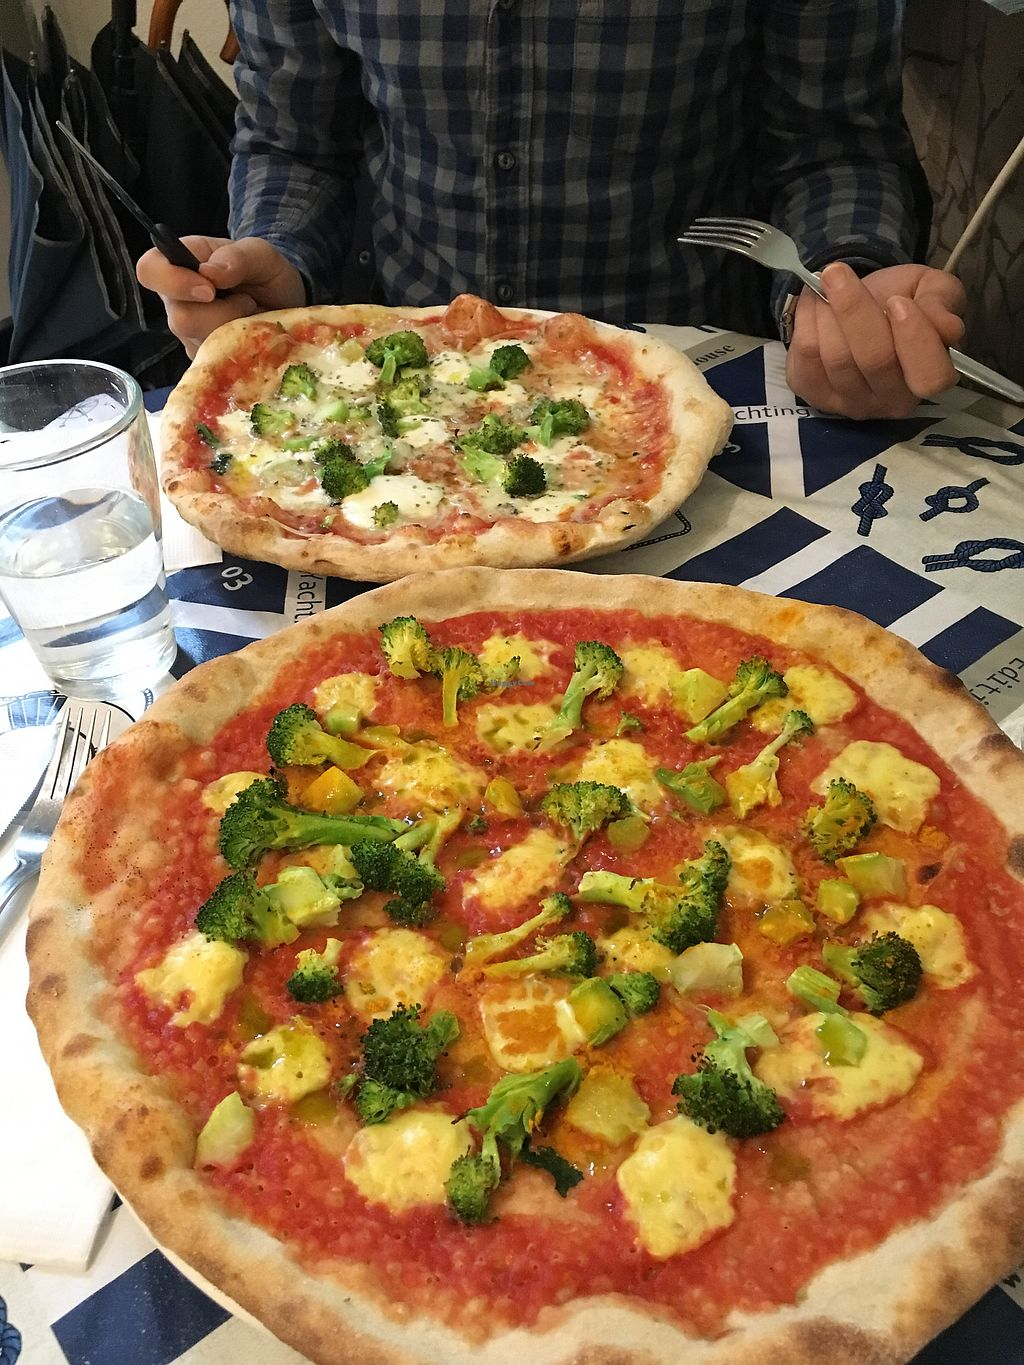 """Photo of Pizzata  by <a href=""""/members/profile/12ebner"""">12ebner</a> <br/>Vegane Pizza <br/> April 8, 2018  - <a href='/contact/abuse/image/64568/382594'>Report</a>"""